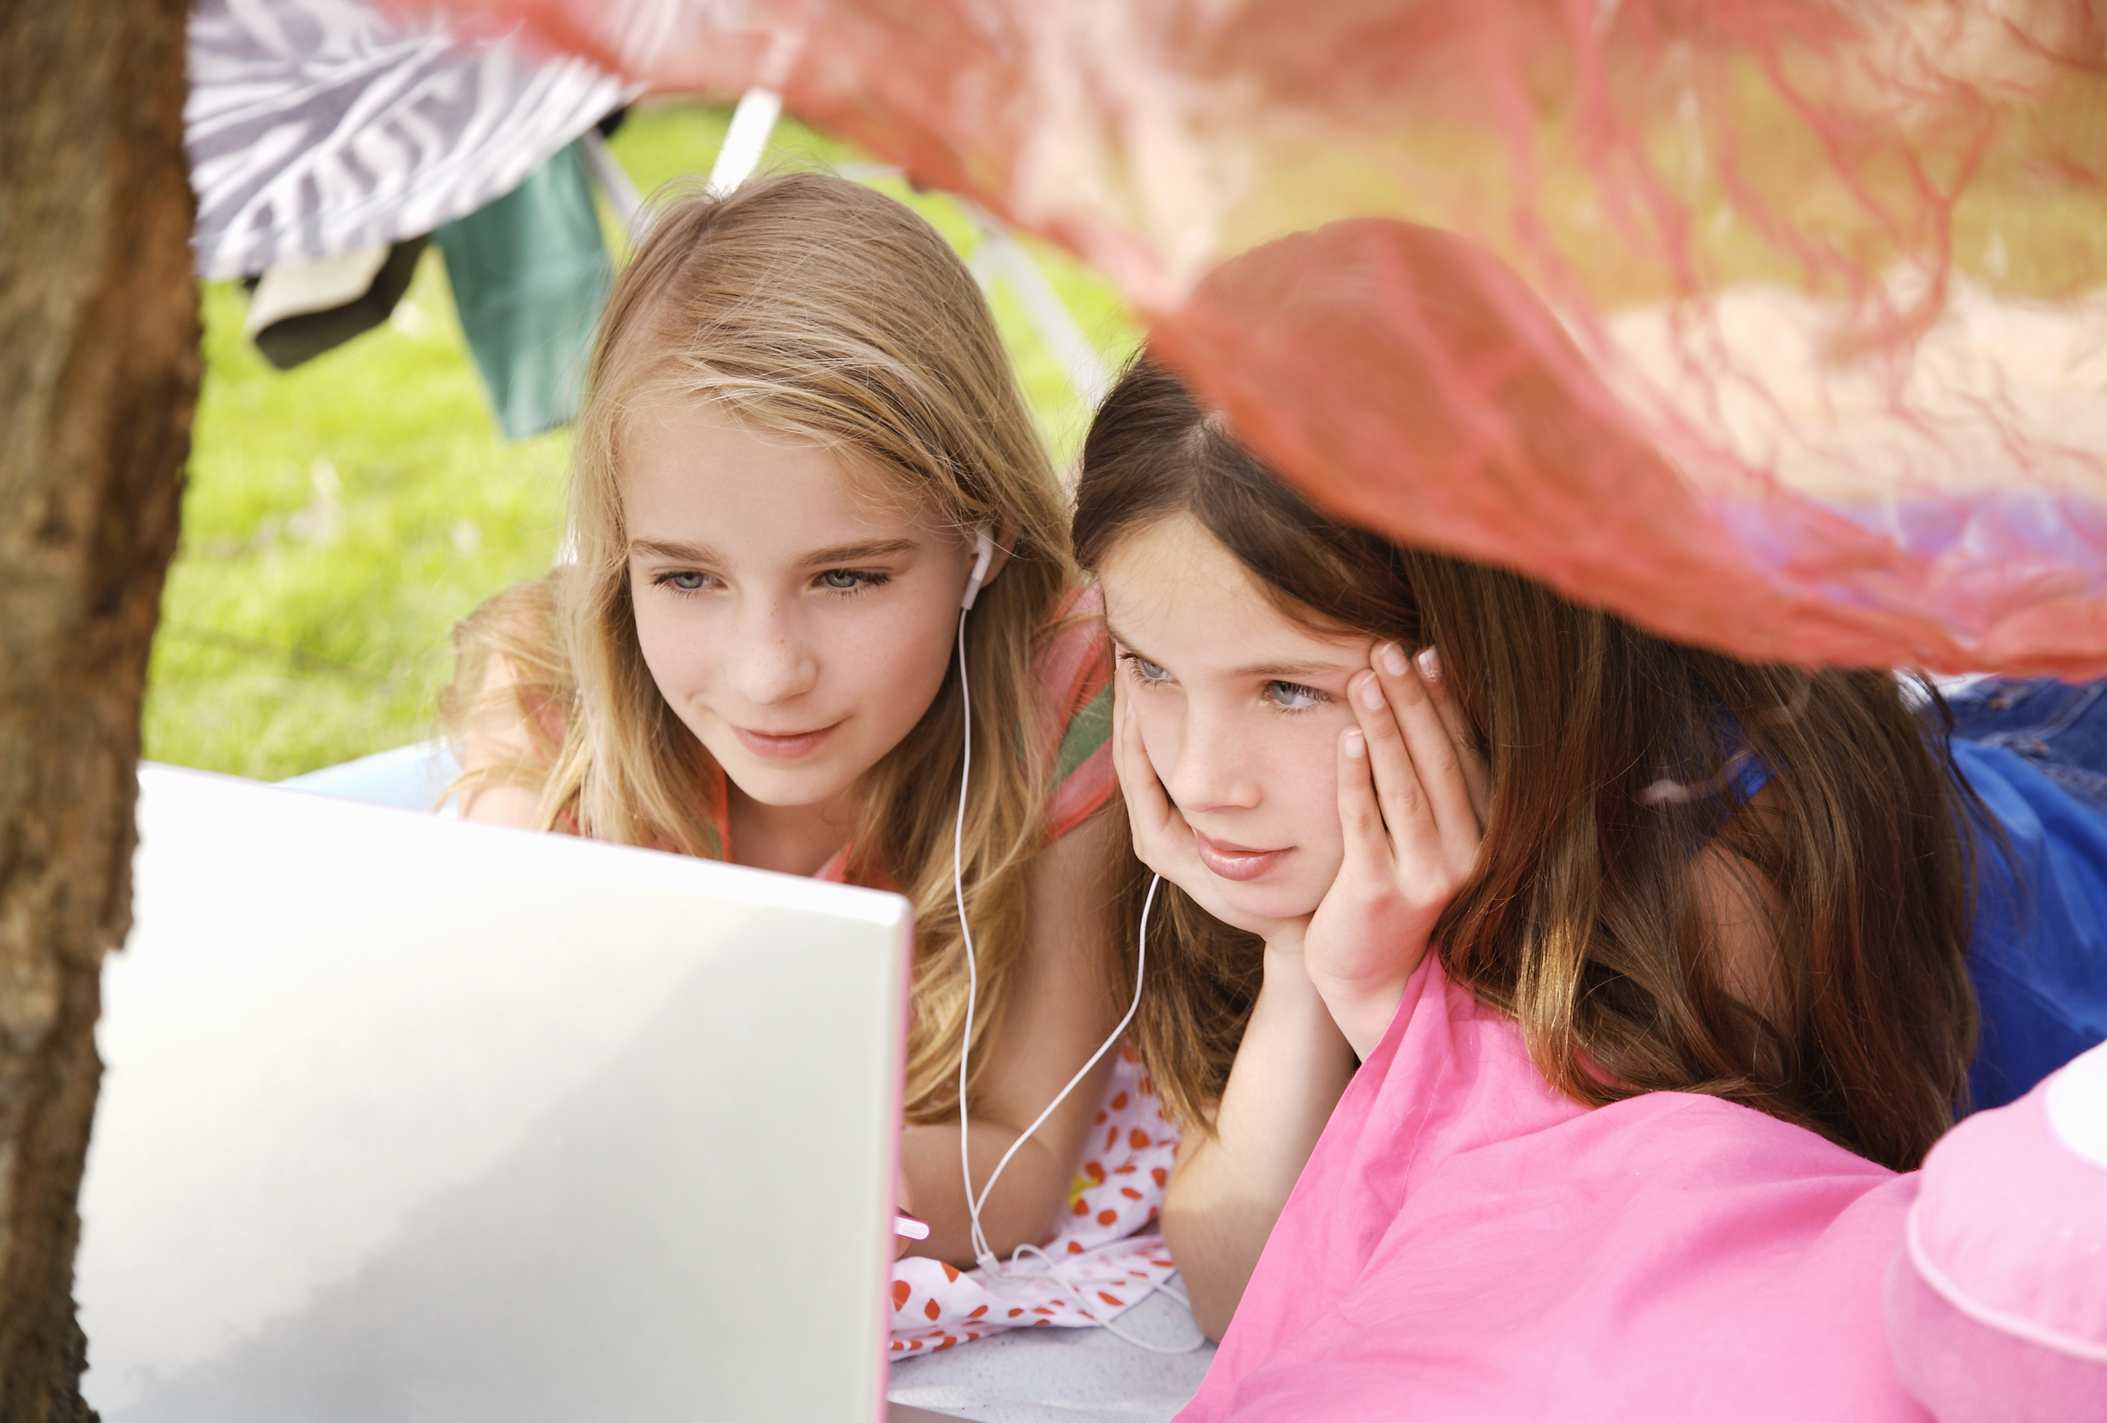 Girls Using Laptop and MP3 Player